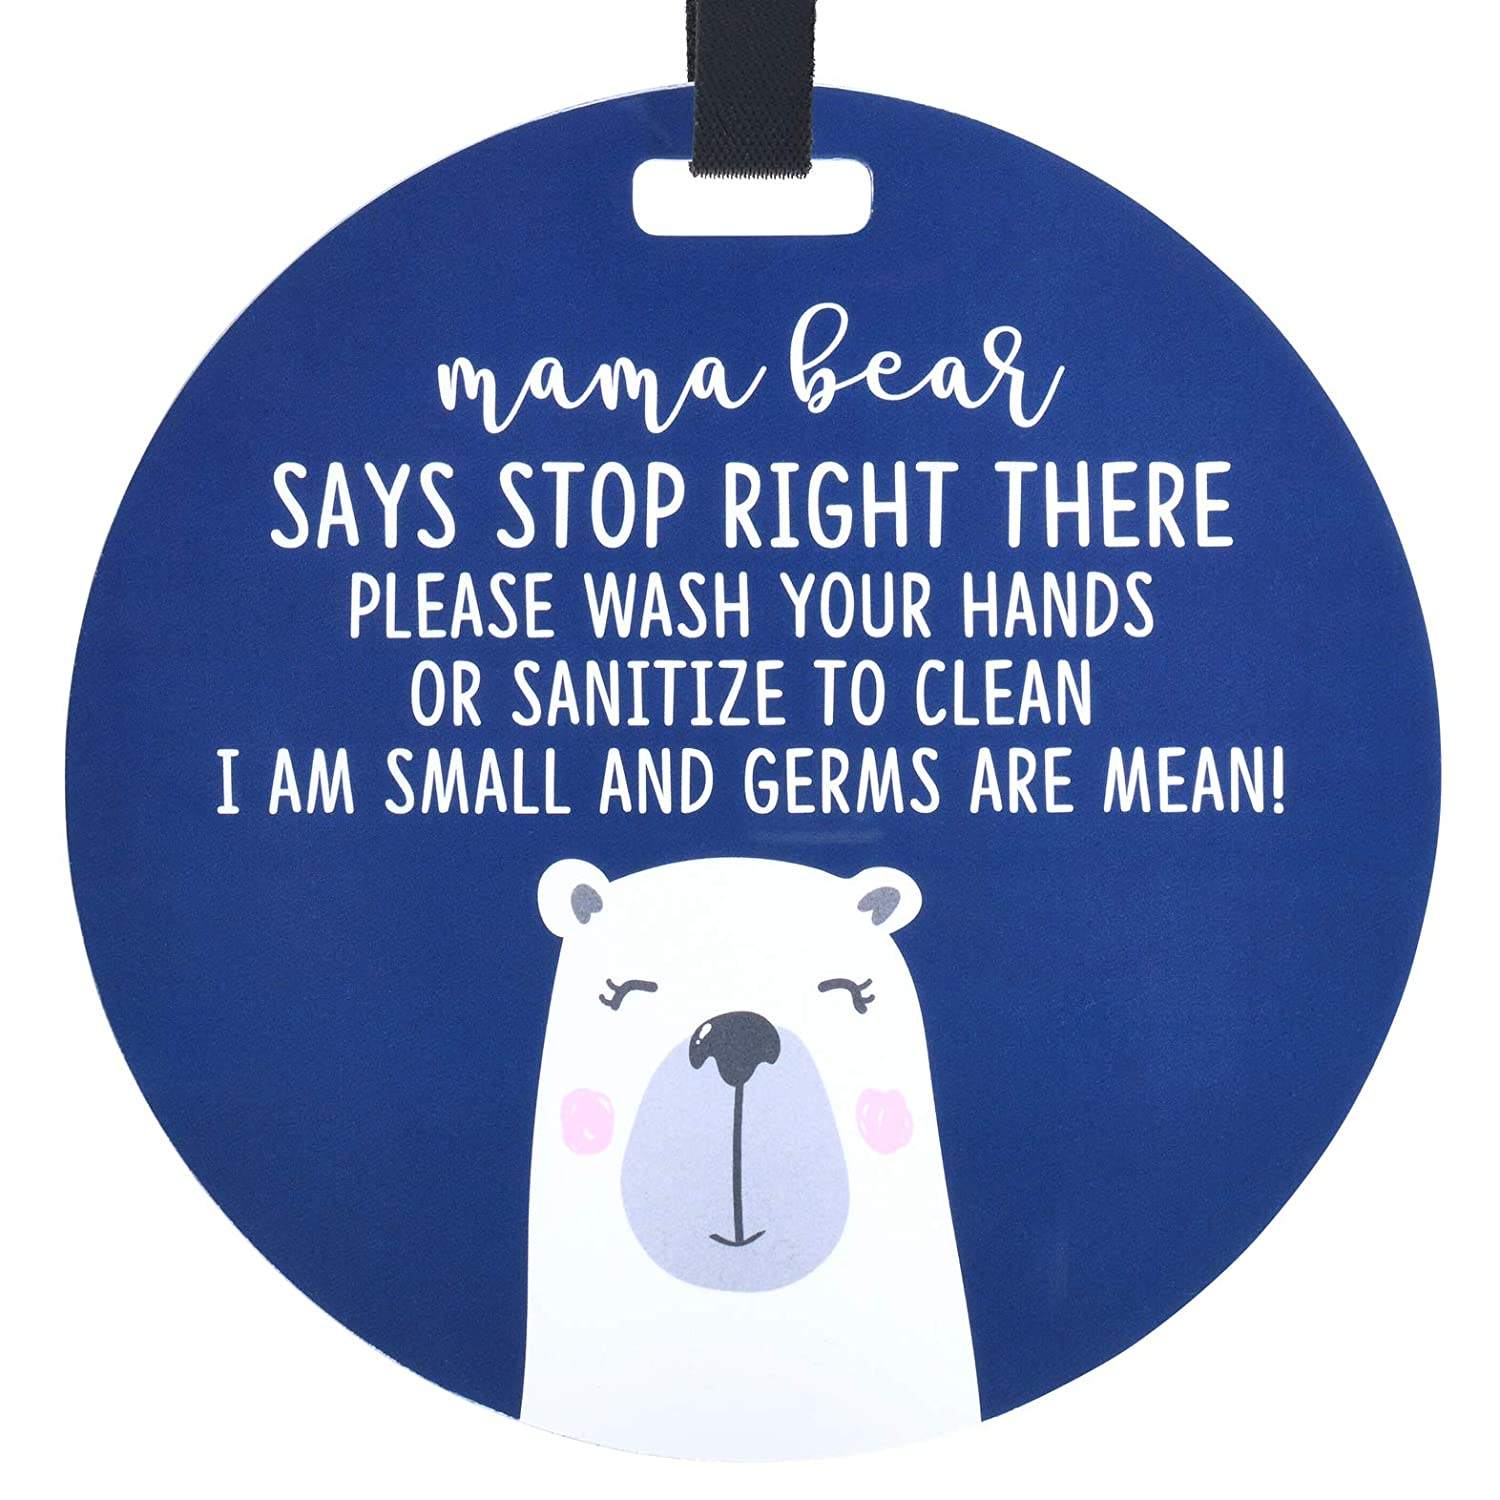 THREE LITTLE TOTS – Mama Bear Sanitize and No Touching Baby Car Seat Sign or Stroller Tag - CPSIA Safety Tested